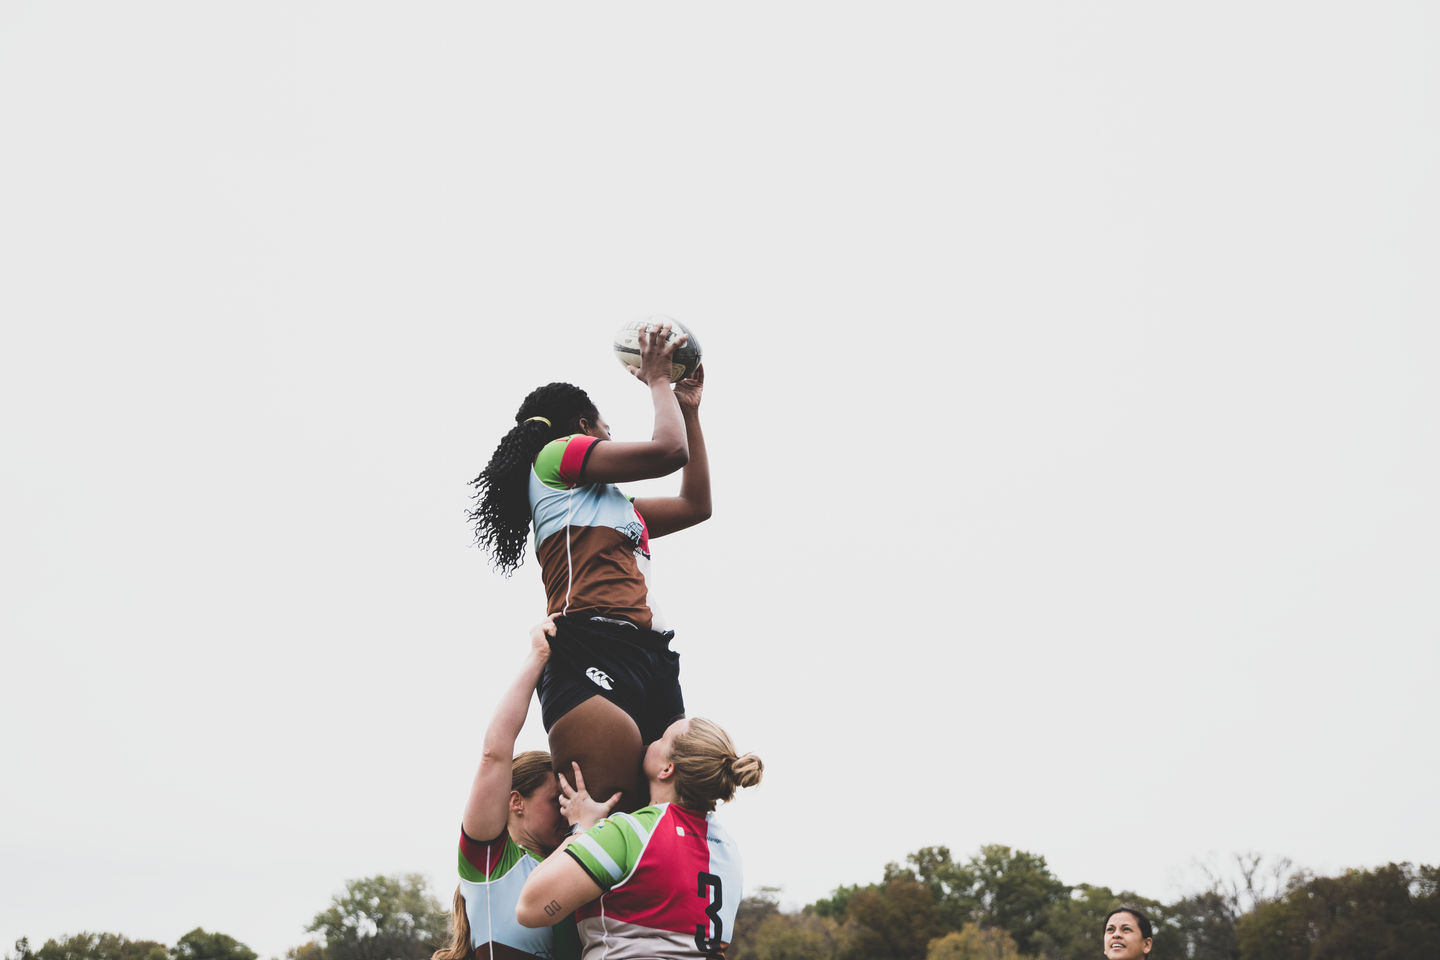 Sports Photography in the DFW / Dallas area. Rugby.